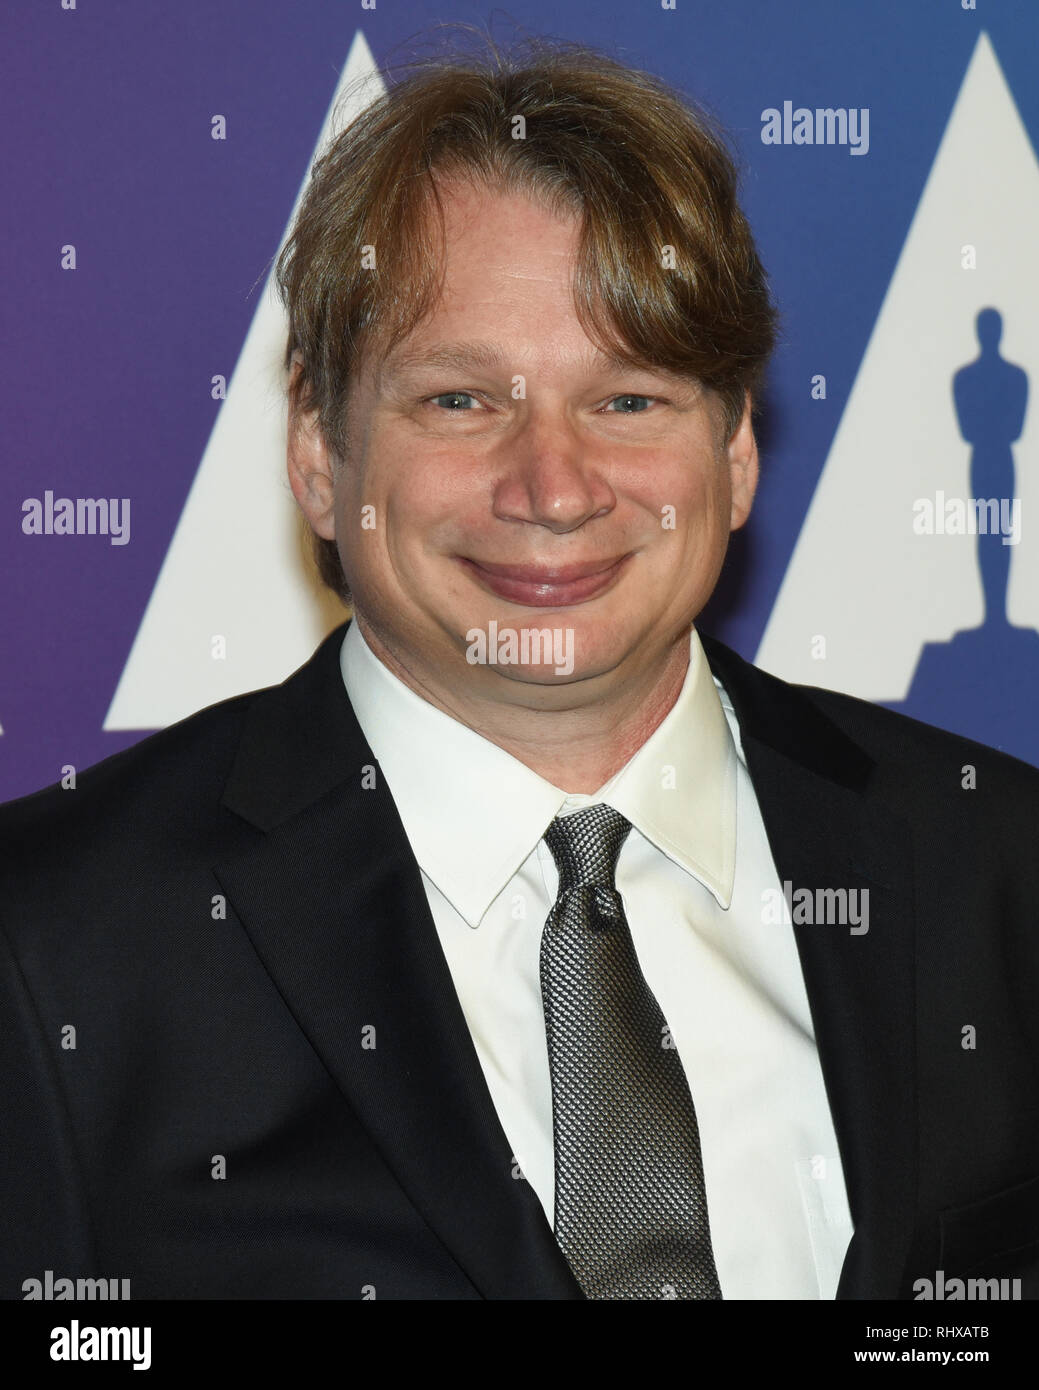 February 4, 2019 - DAN DELEEUW attends the 91st Oscars Nominees Luncheon at The Beverly Hilton Hotel in Beverly Hills, California. (Credit Image: © Billy Bennight/ZUMA Wire) - Stock Image